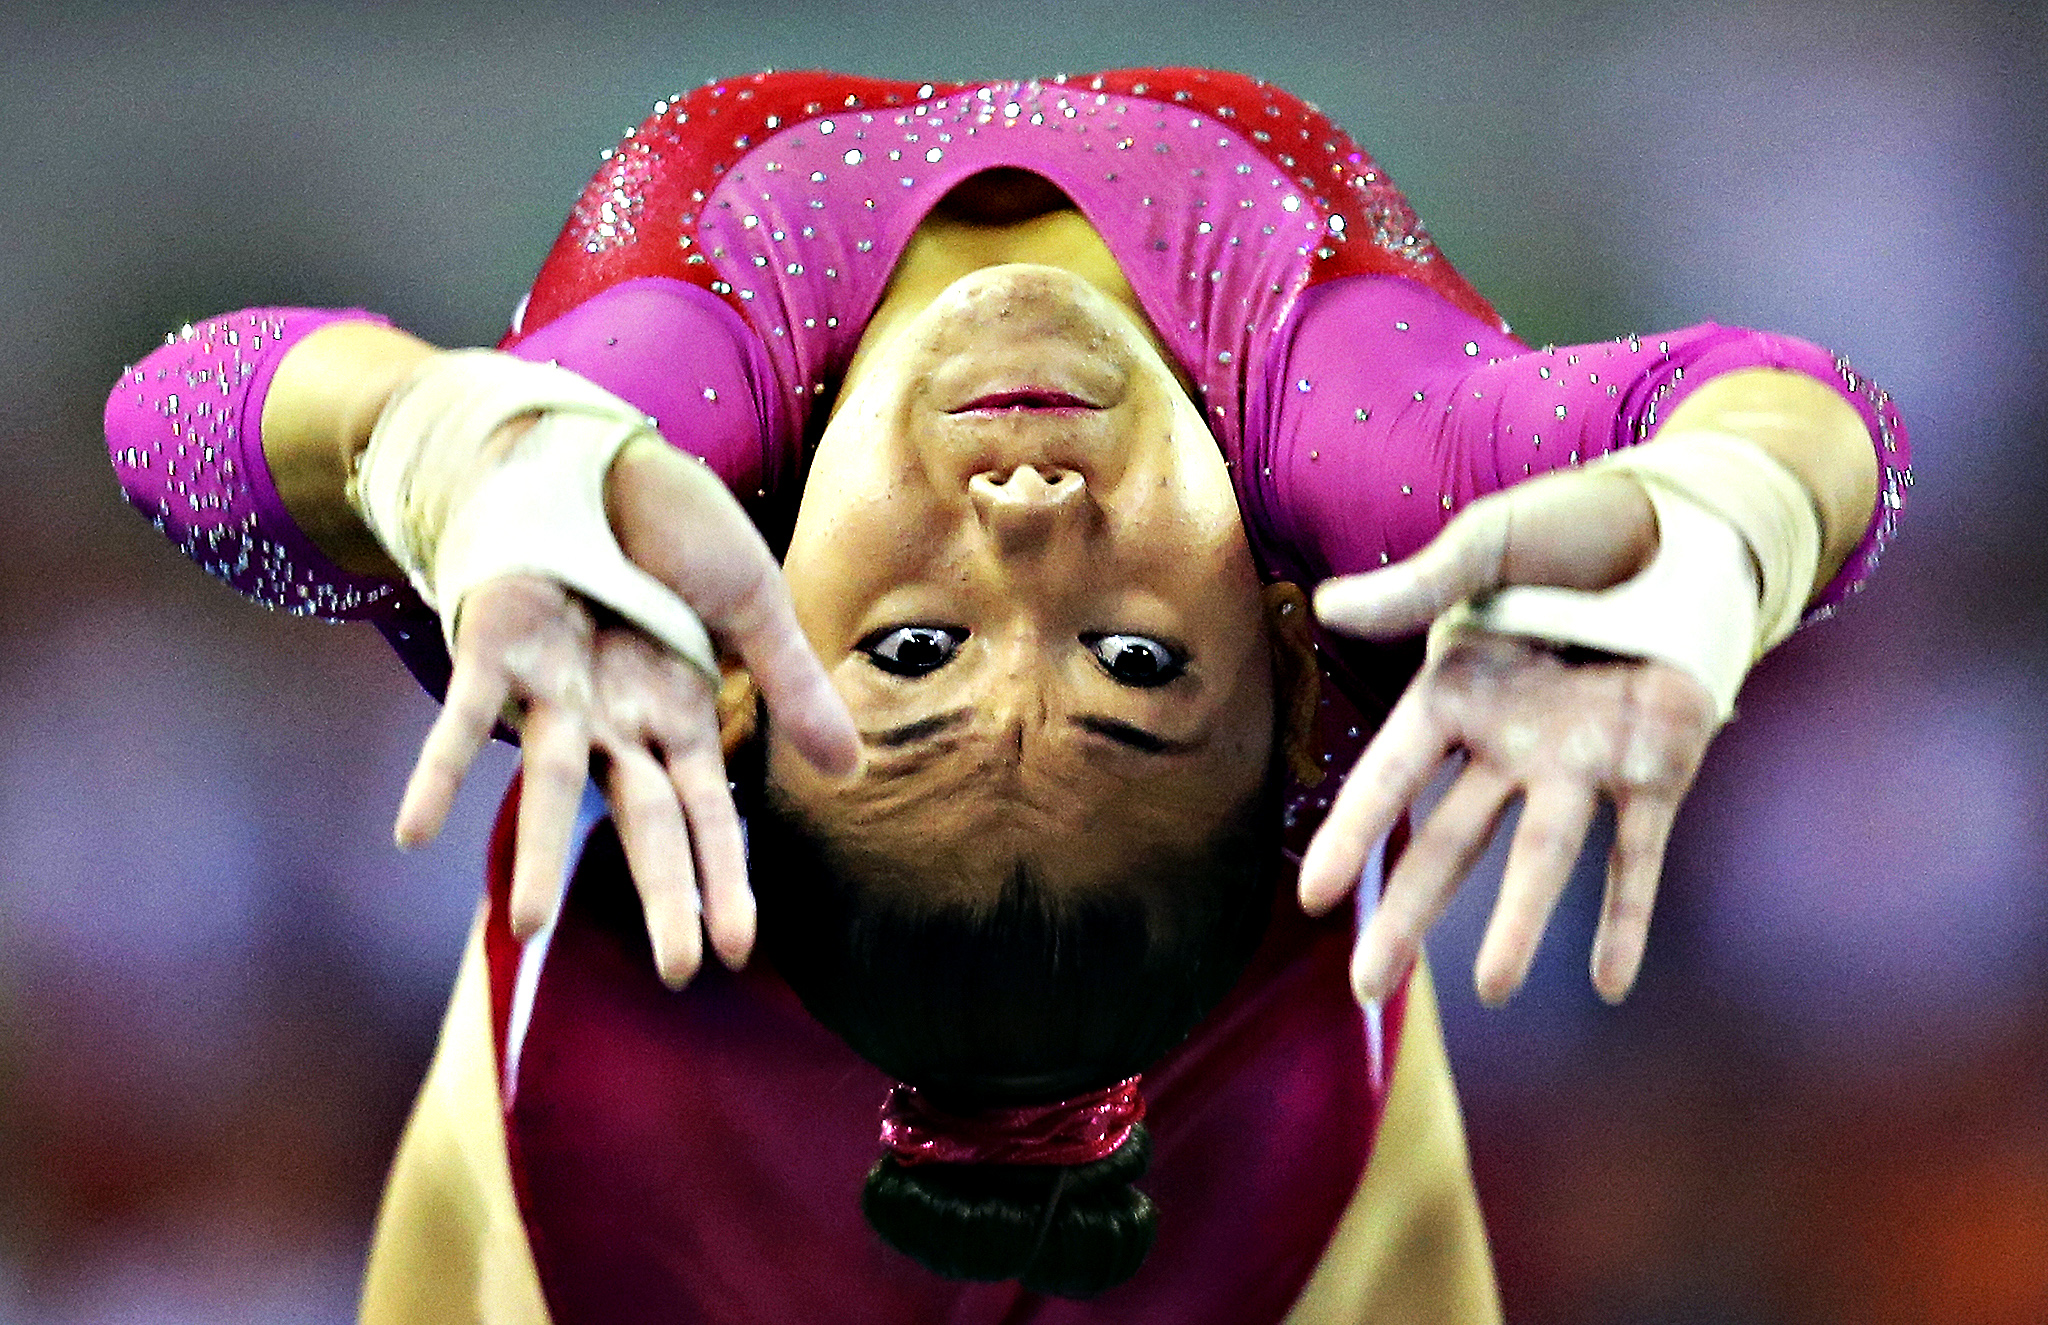 Kyla Ross of the United States jumps onto the vault as she competes in the women's all-round final of the Artistic Gymnastics World Championship at the Guangxi Gymnasium in Nanning, capital of southwest China's Guangxi Zhuang Autonomous Region Friday, Oct. 10, 2014.